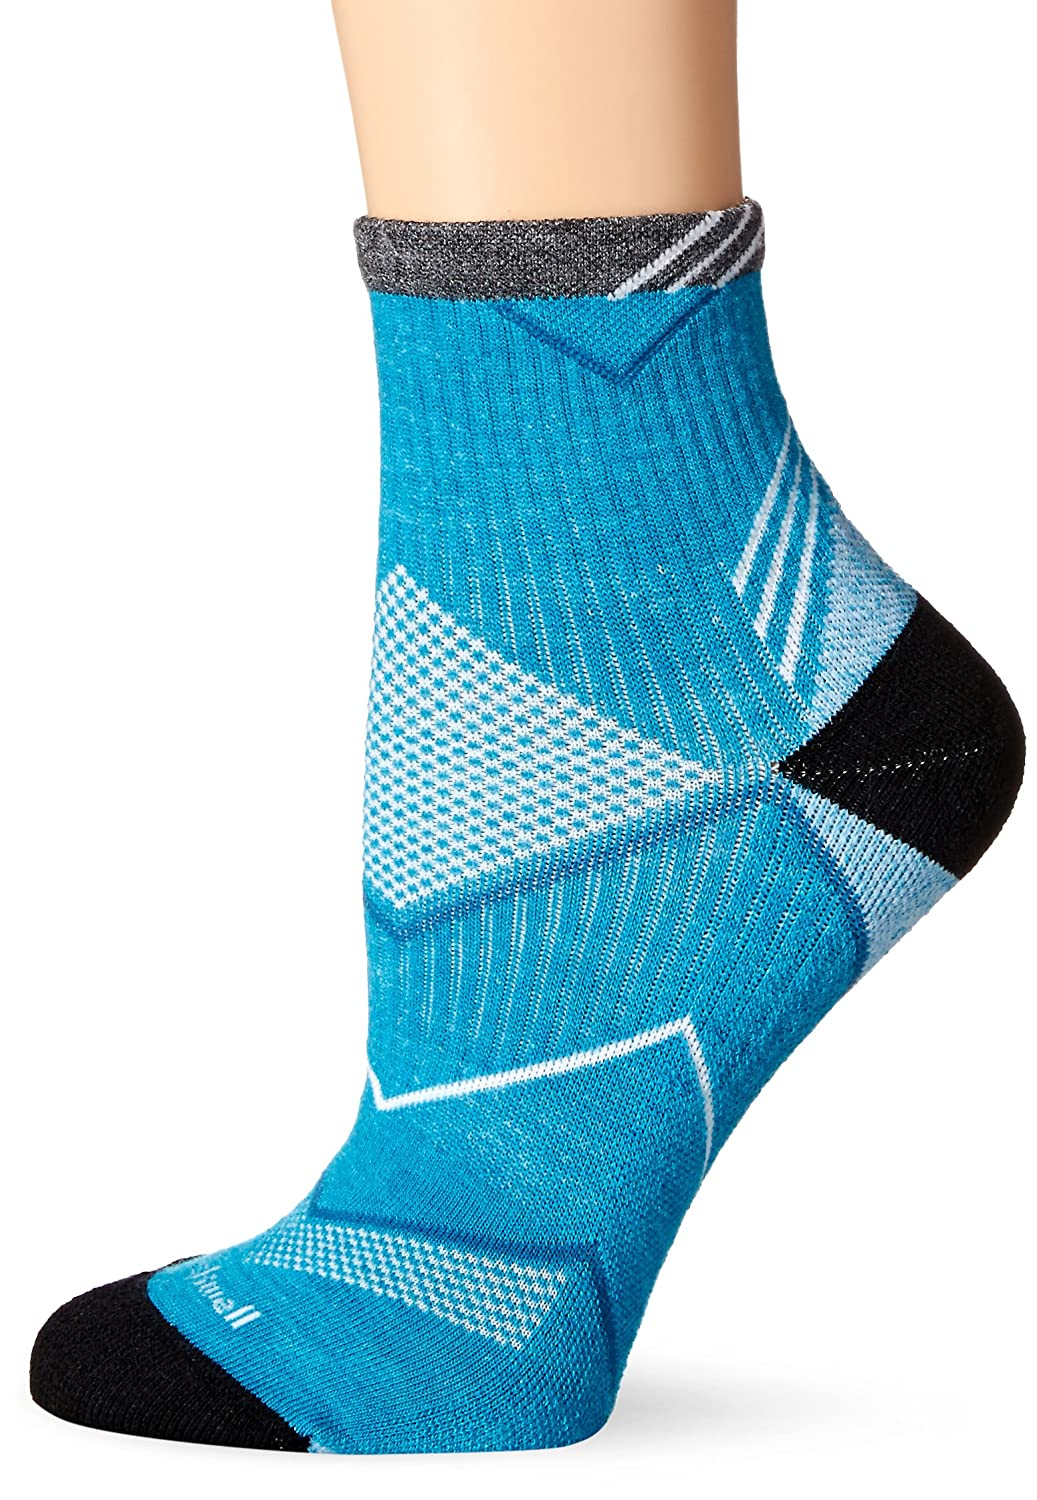 Sockwell Women's Incline Quarter Moderate